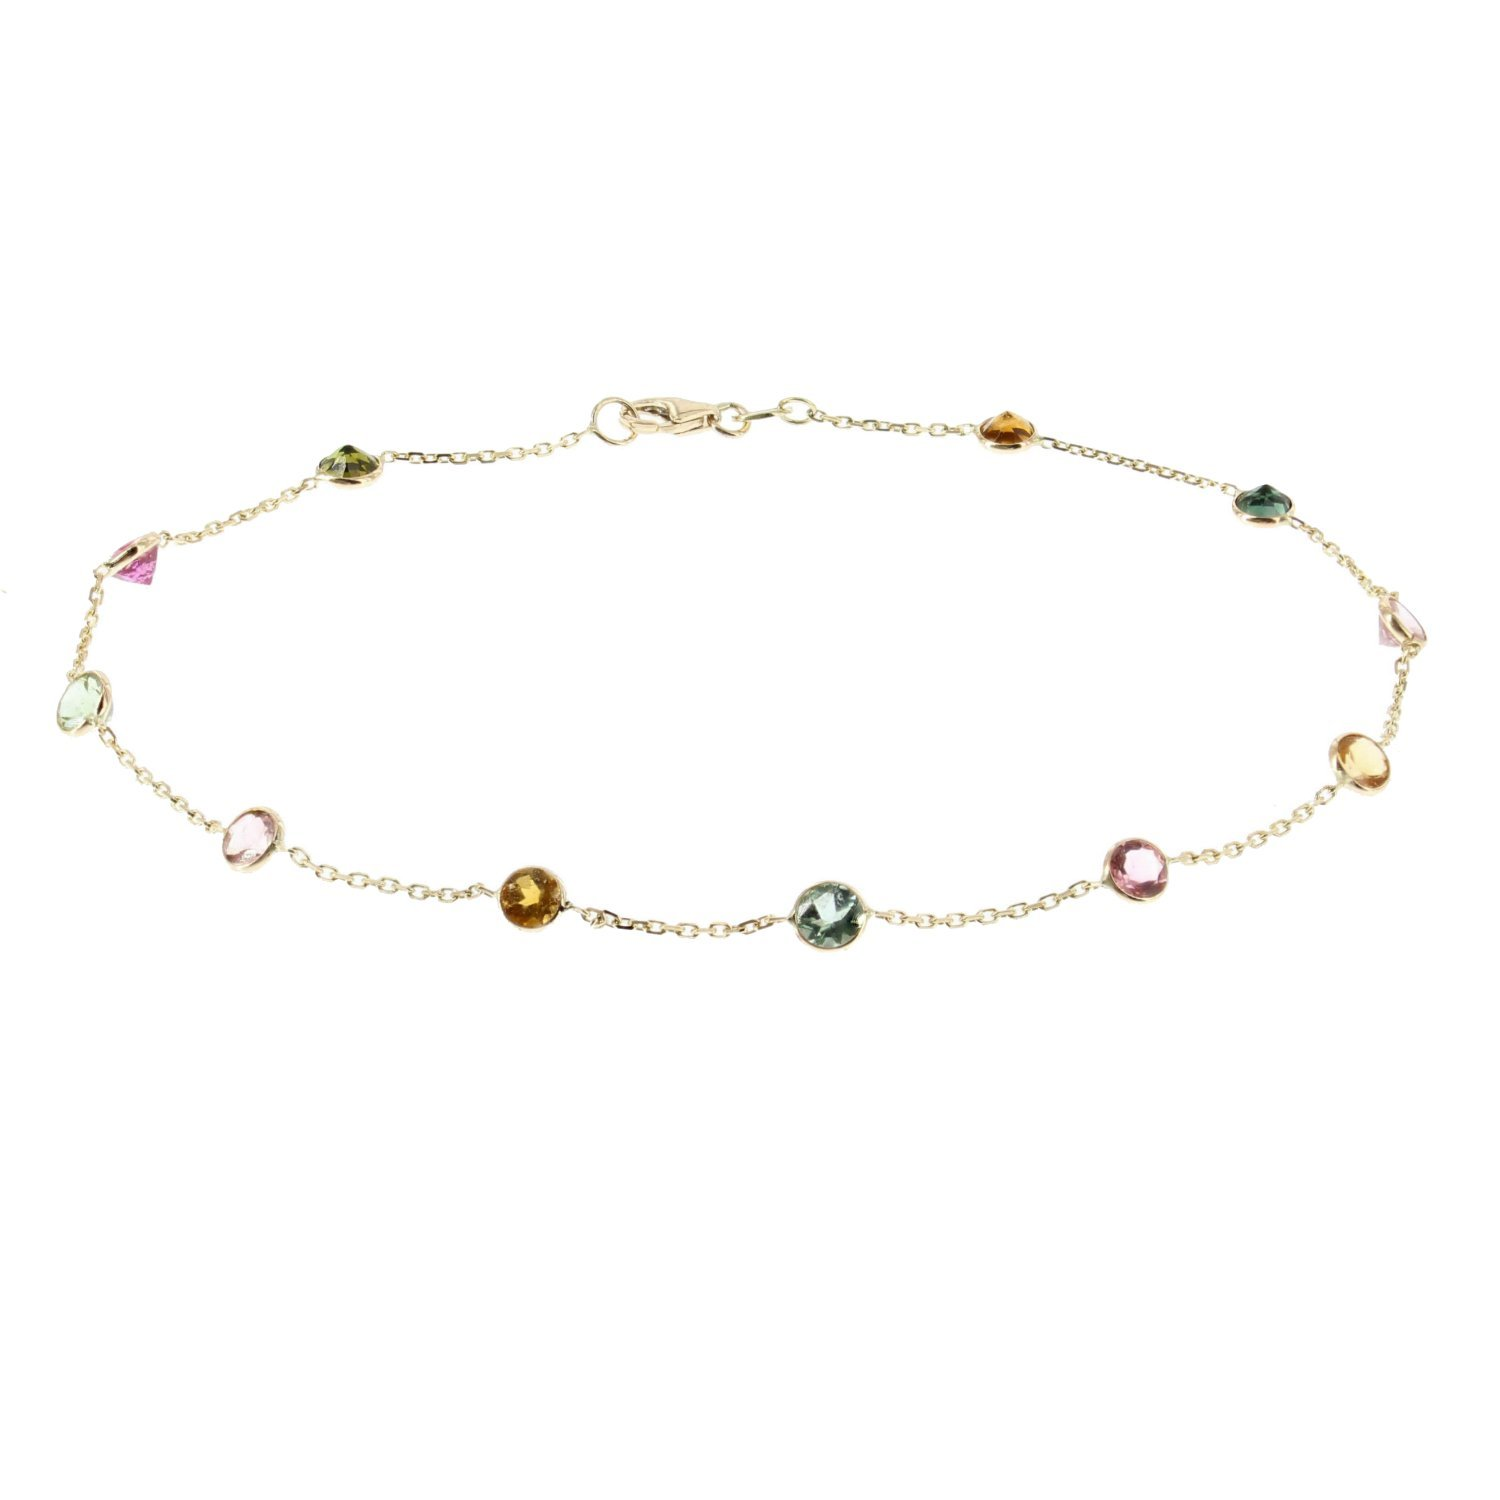 14k Yellow Gold Handmade Station Anklet With Tourmaline Gemstones 9 - 11 Inches